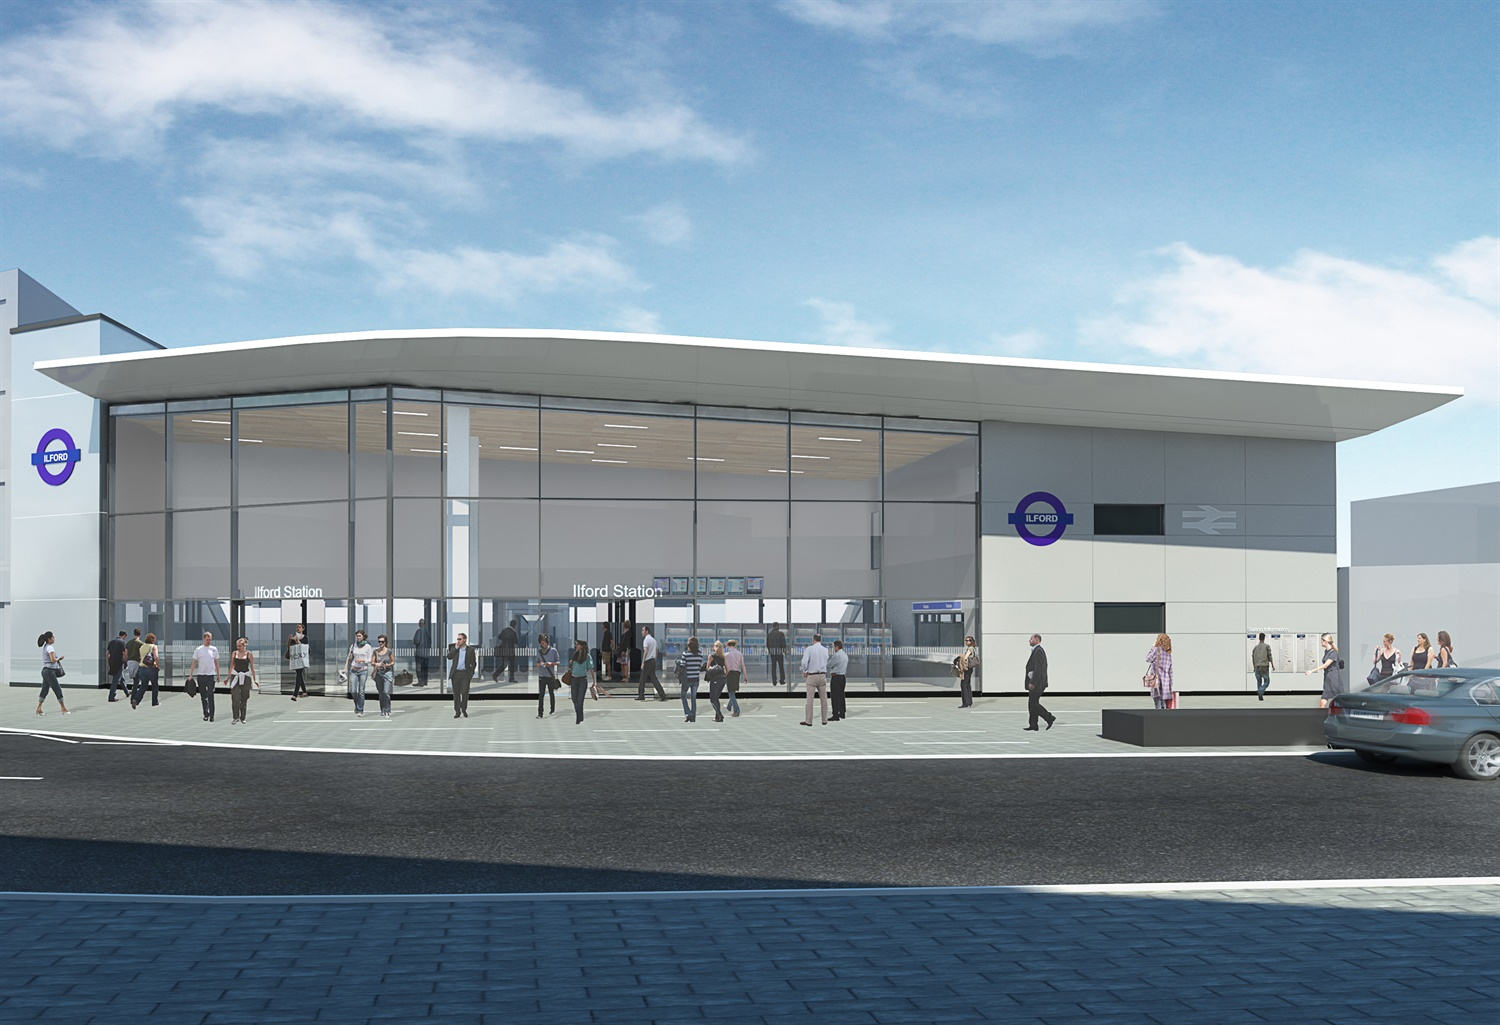 Proposals submitted for Crossrail upgrade of Ilford station